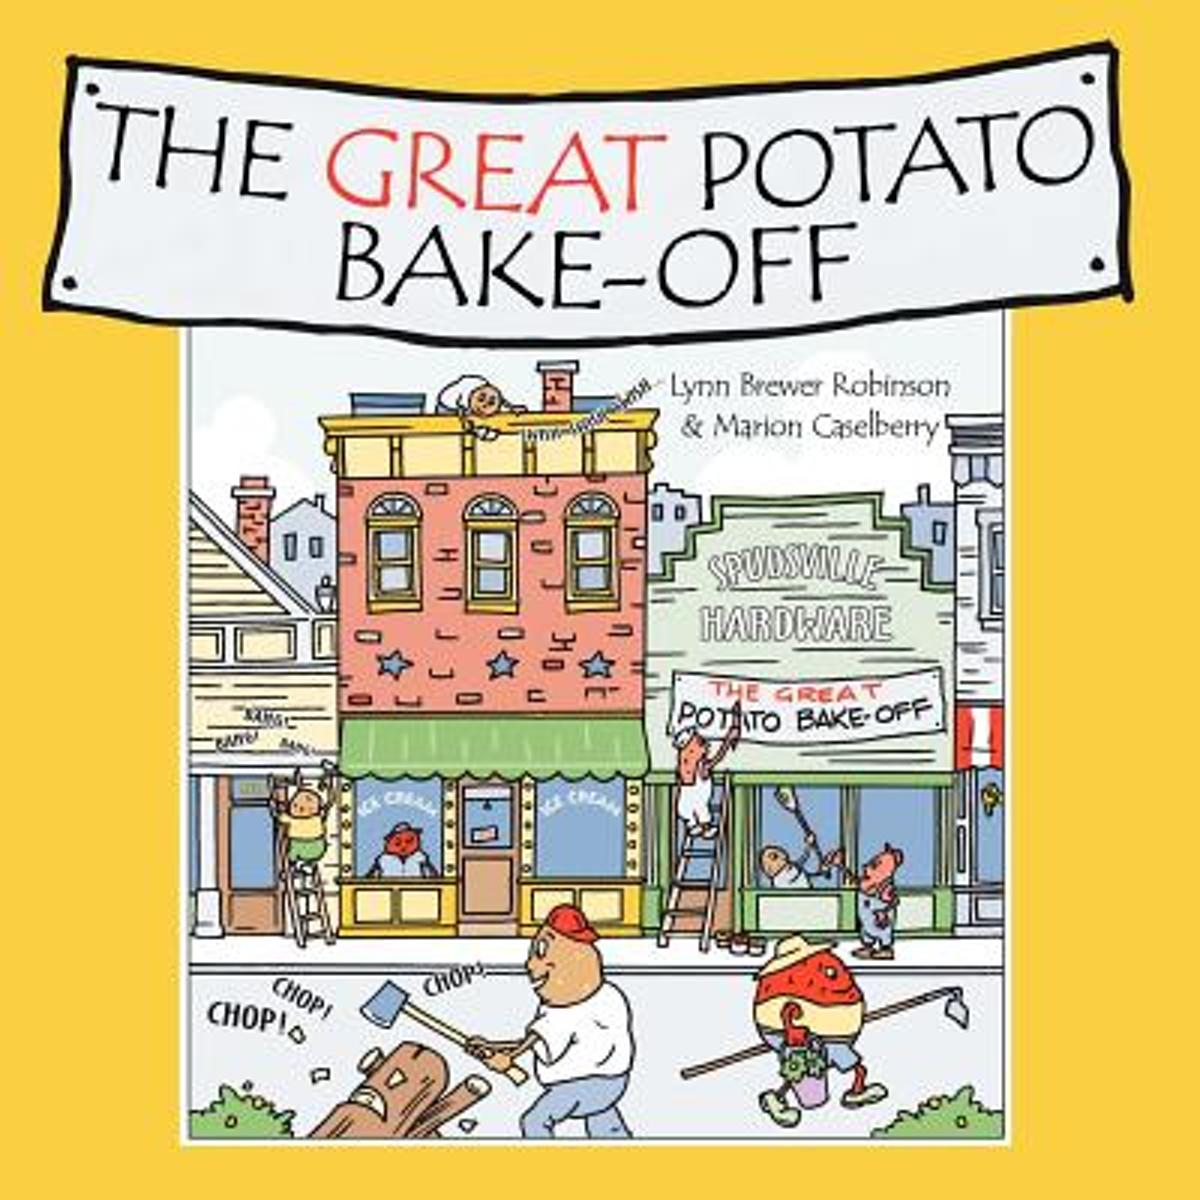 The Great Potato Bake-Off